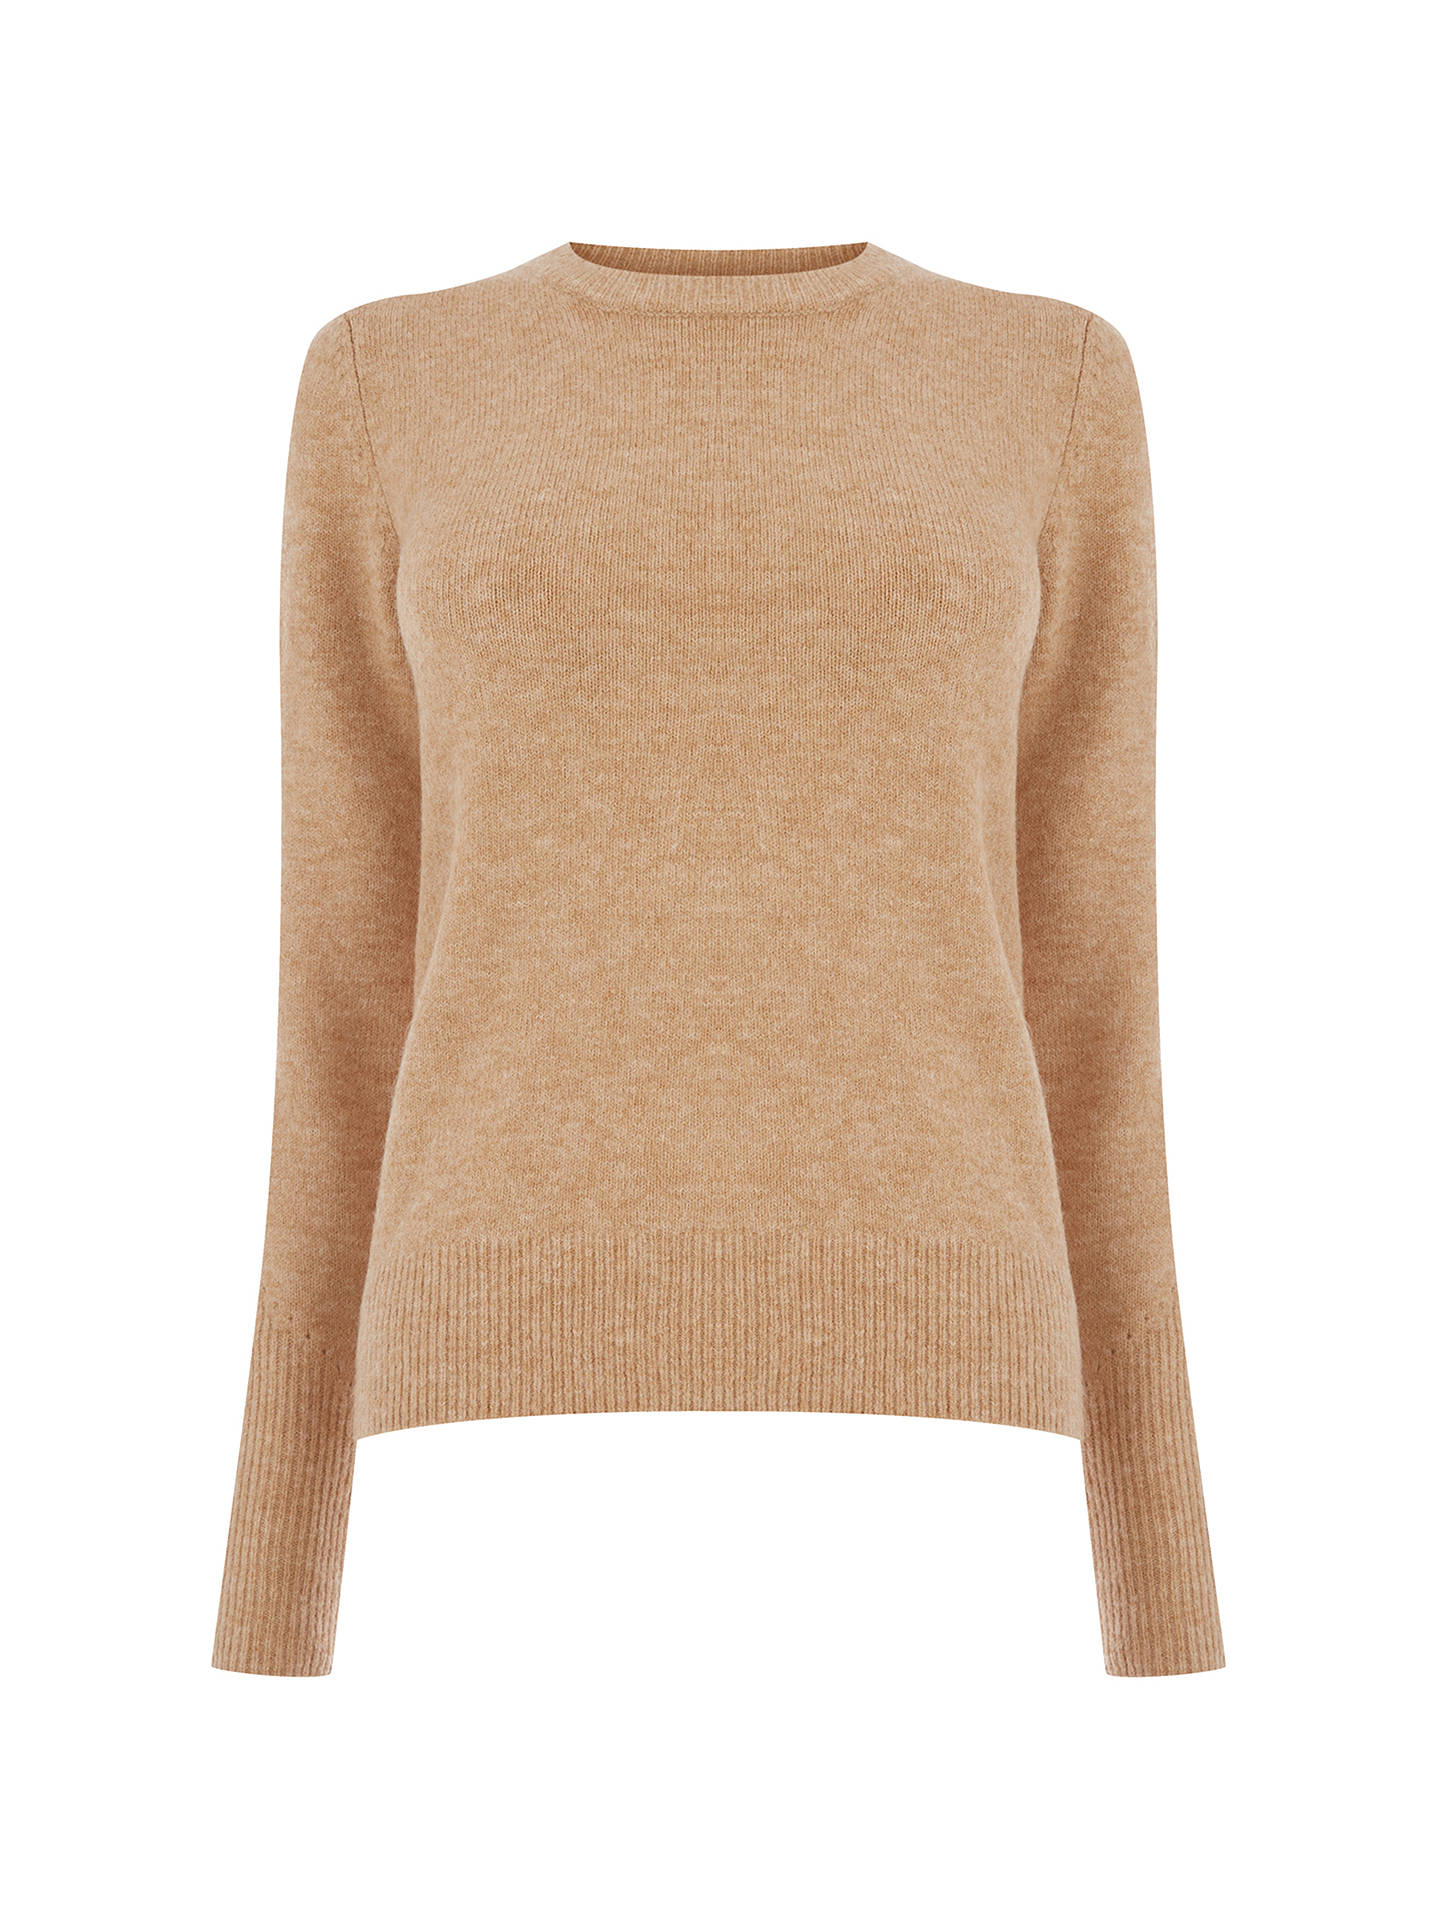 BuyWarehouse Soft Crew Jumper, Stone, 6 Online at johnlewis.com